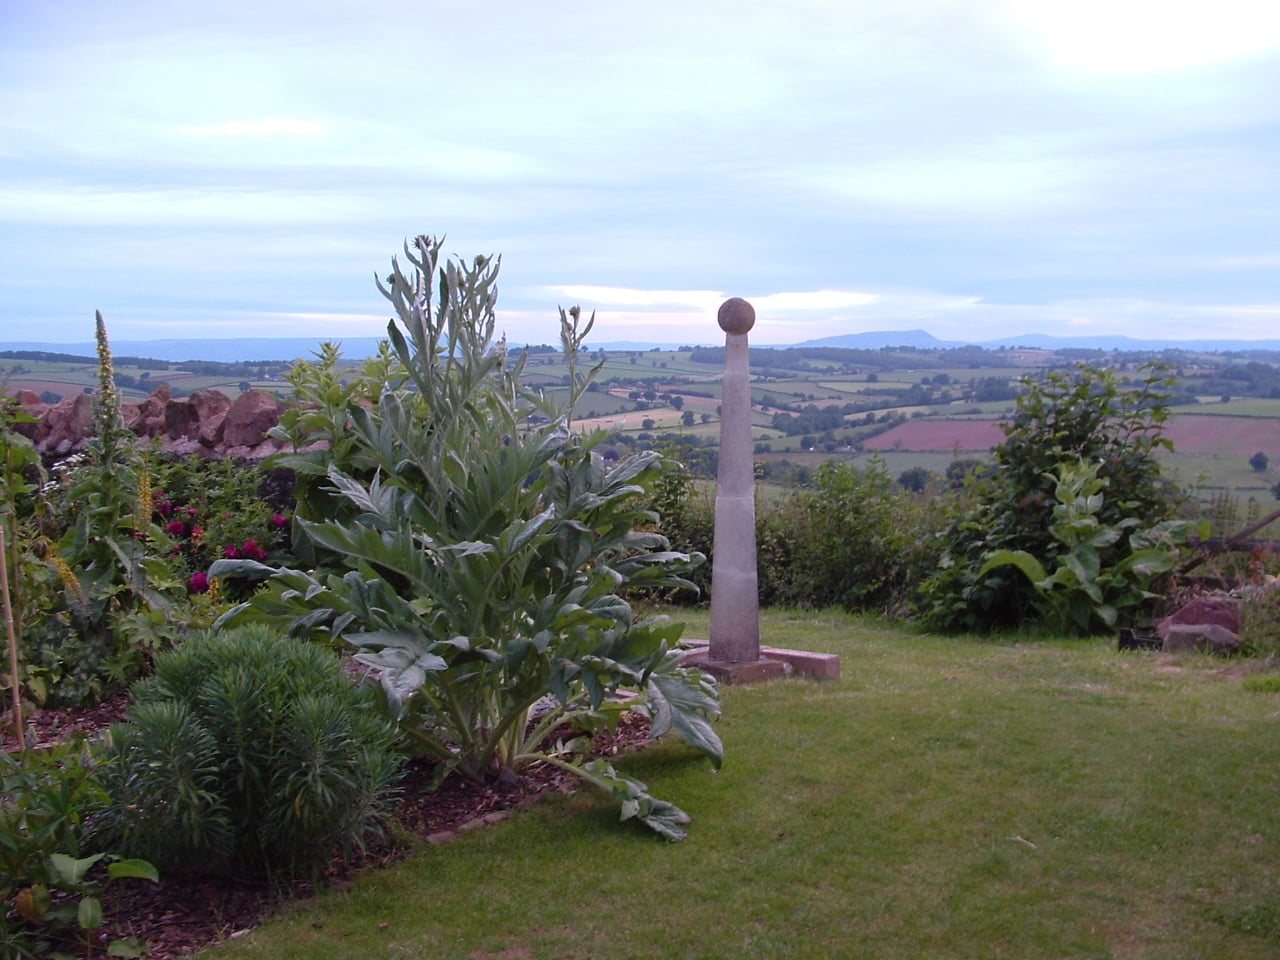 In a hilltop garden with a spectacular view, a stone obelisk draws the eye into the distance.